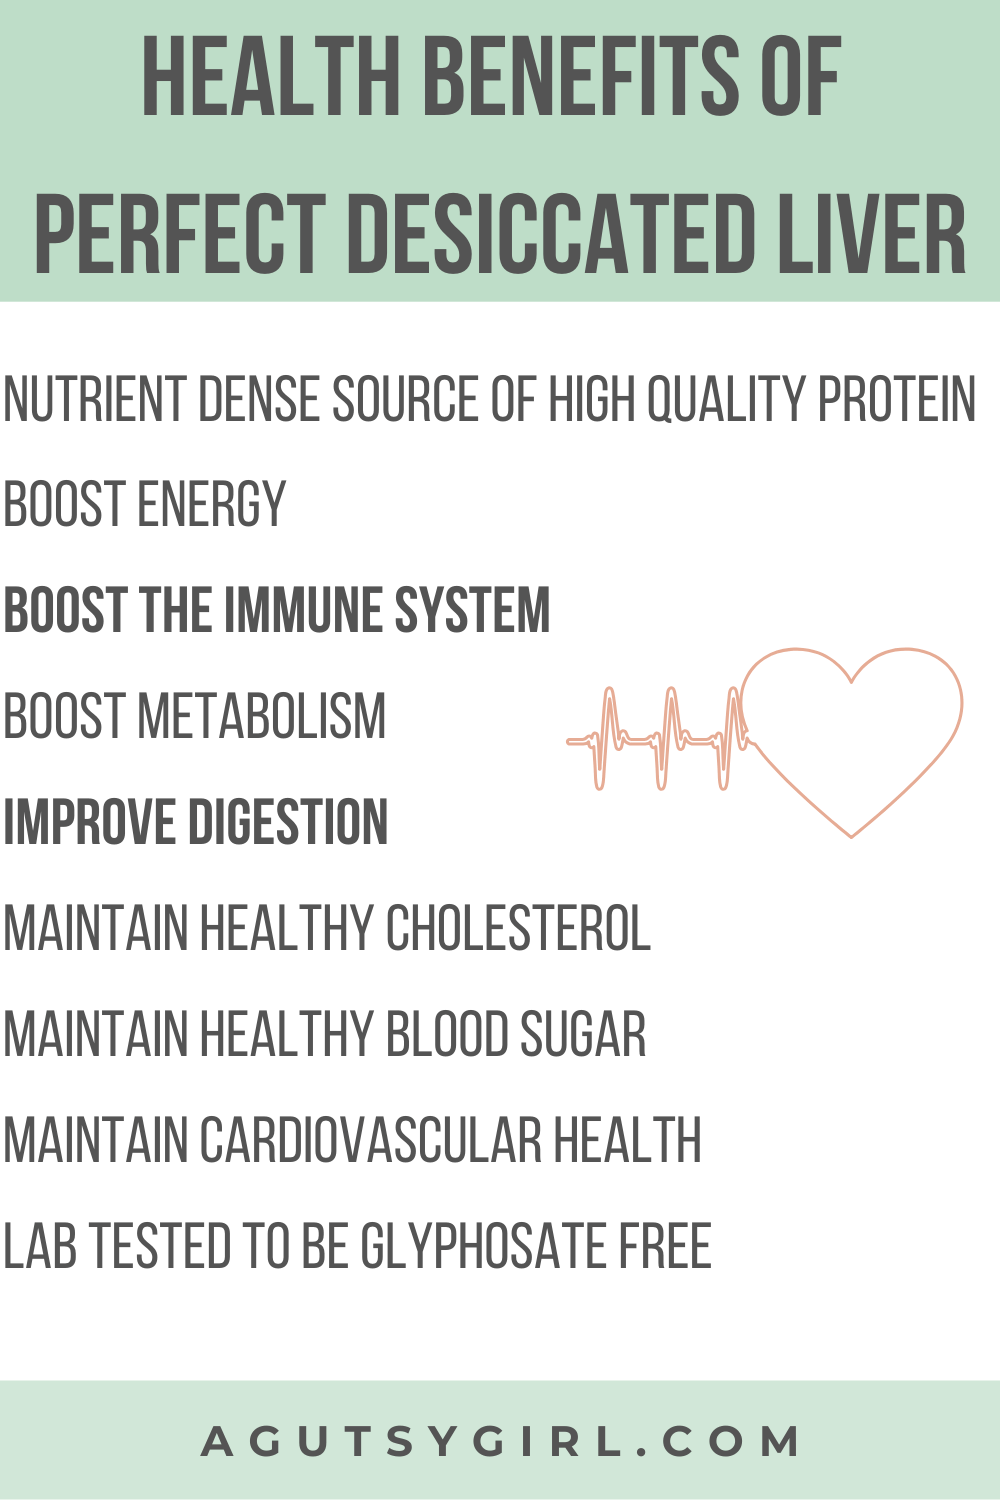 Health Benefits of Perfect Desiccated Liver agutsygirl.com #perfectsupplements #liver #guthealth